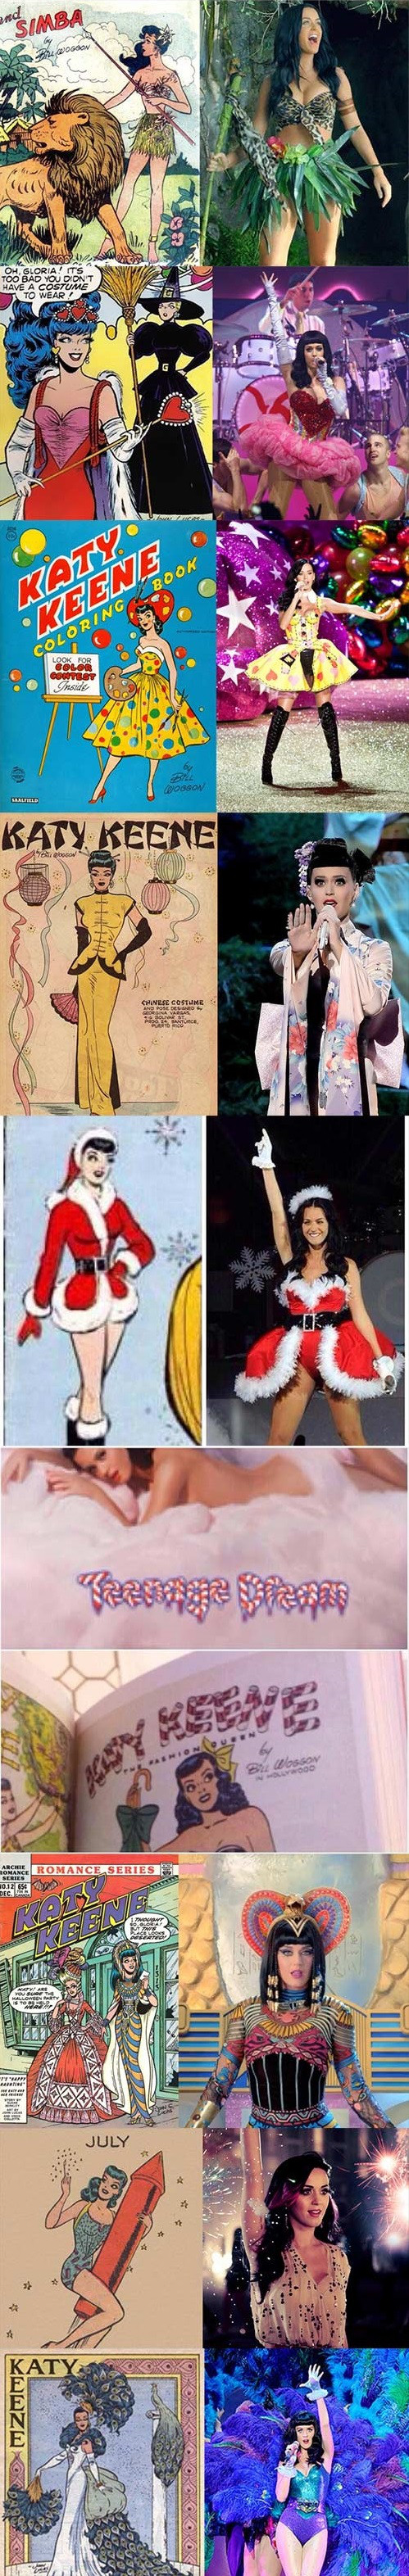 Katy Perry pin-up